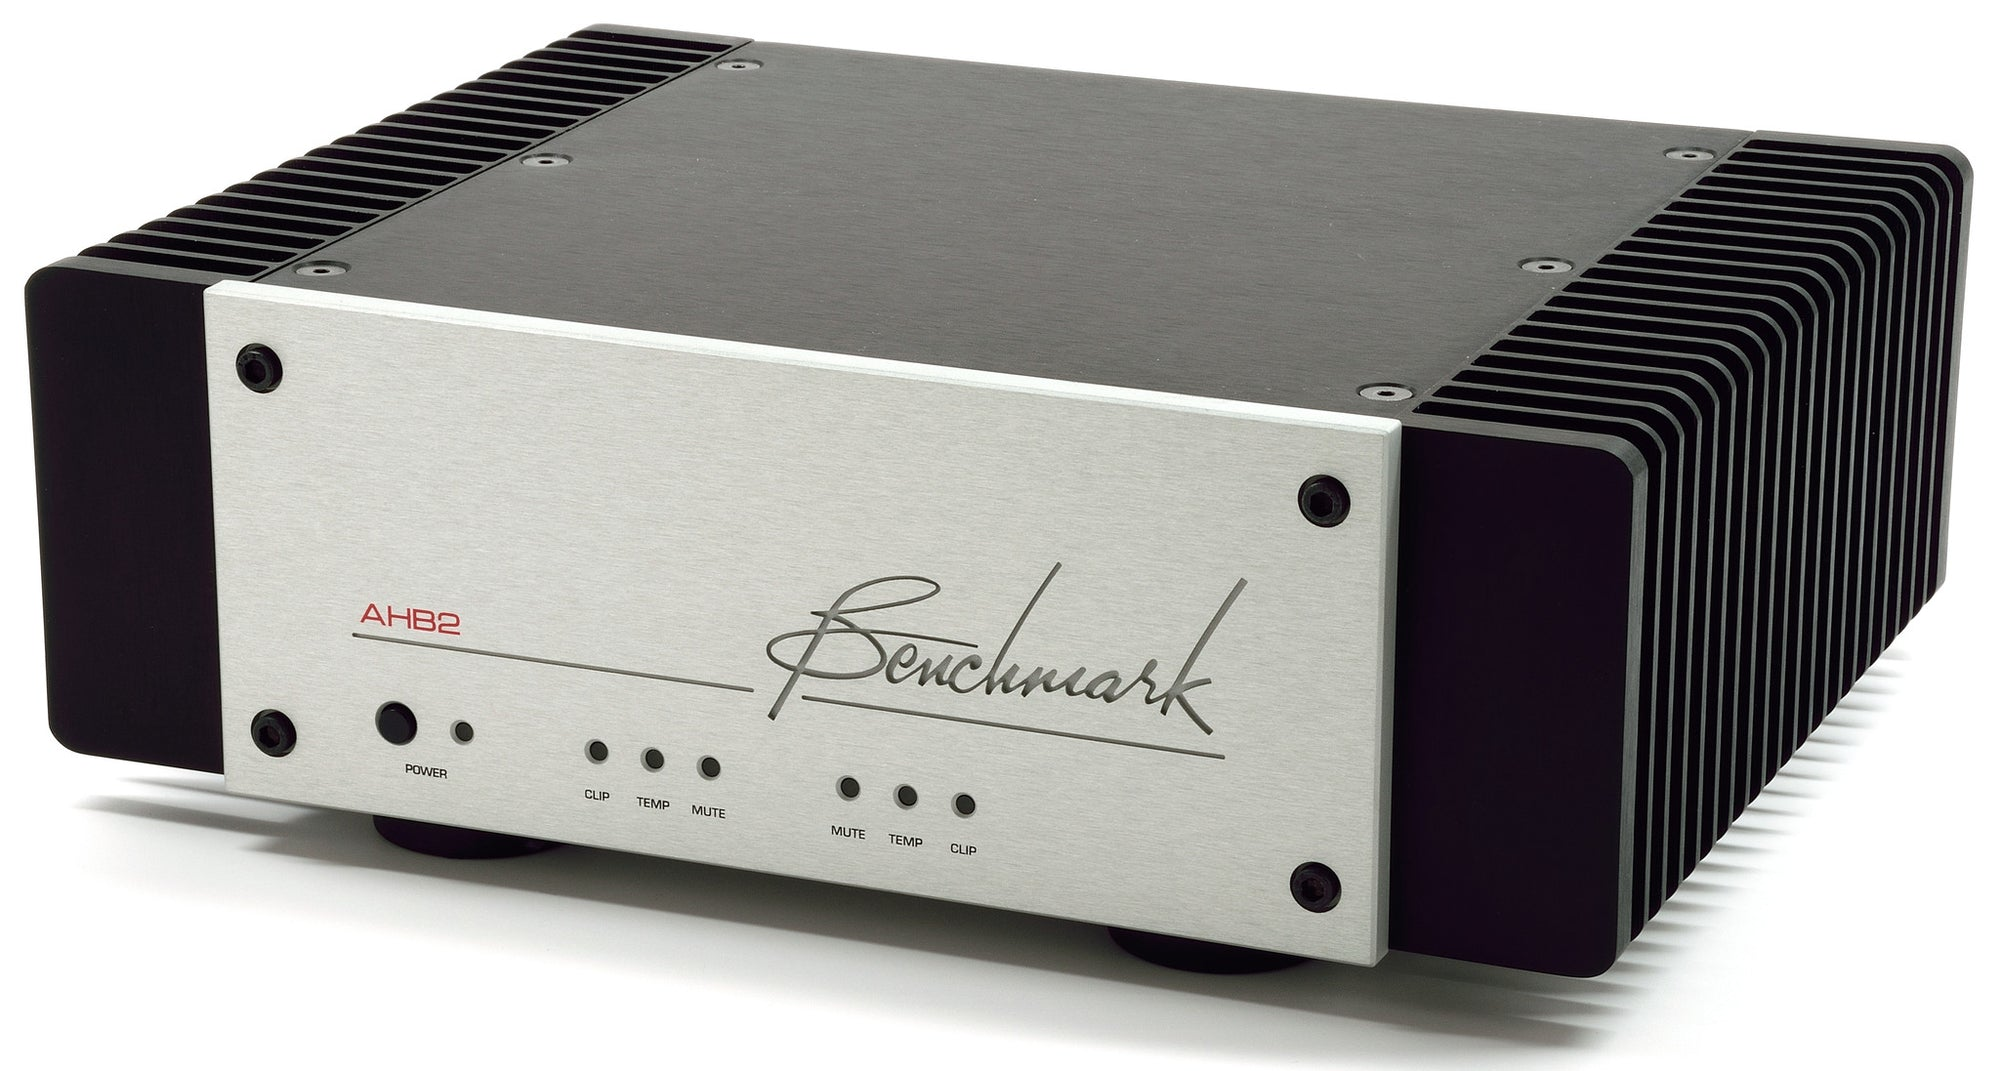 Benchmark AHB2 Power Amplifier